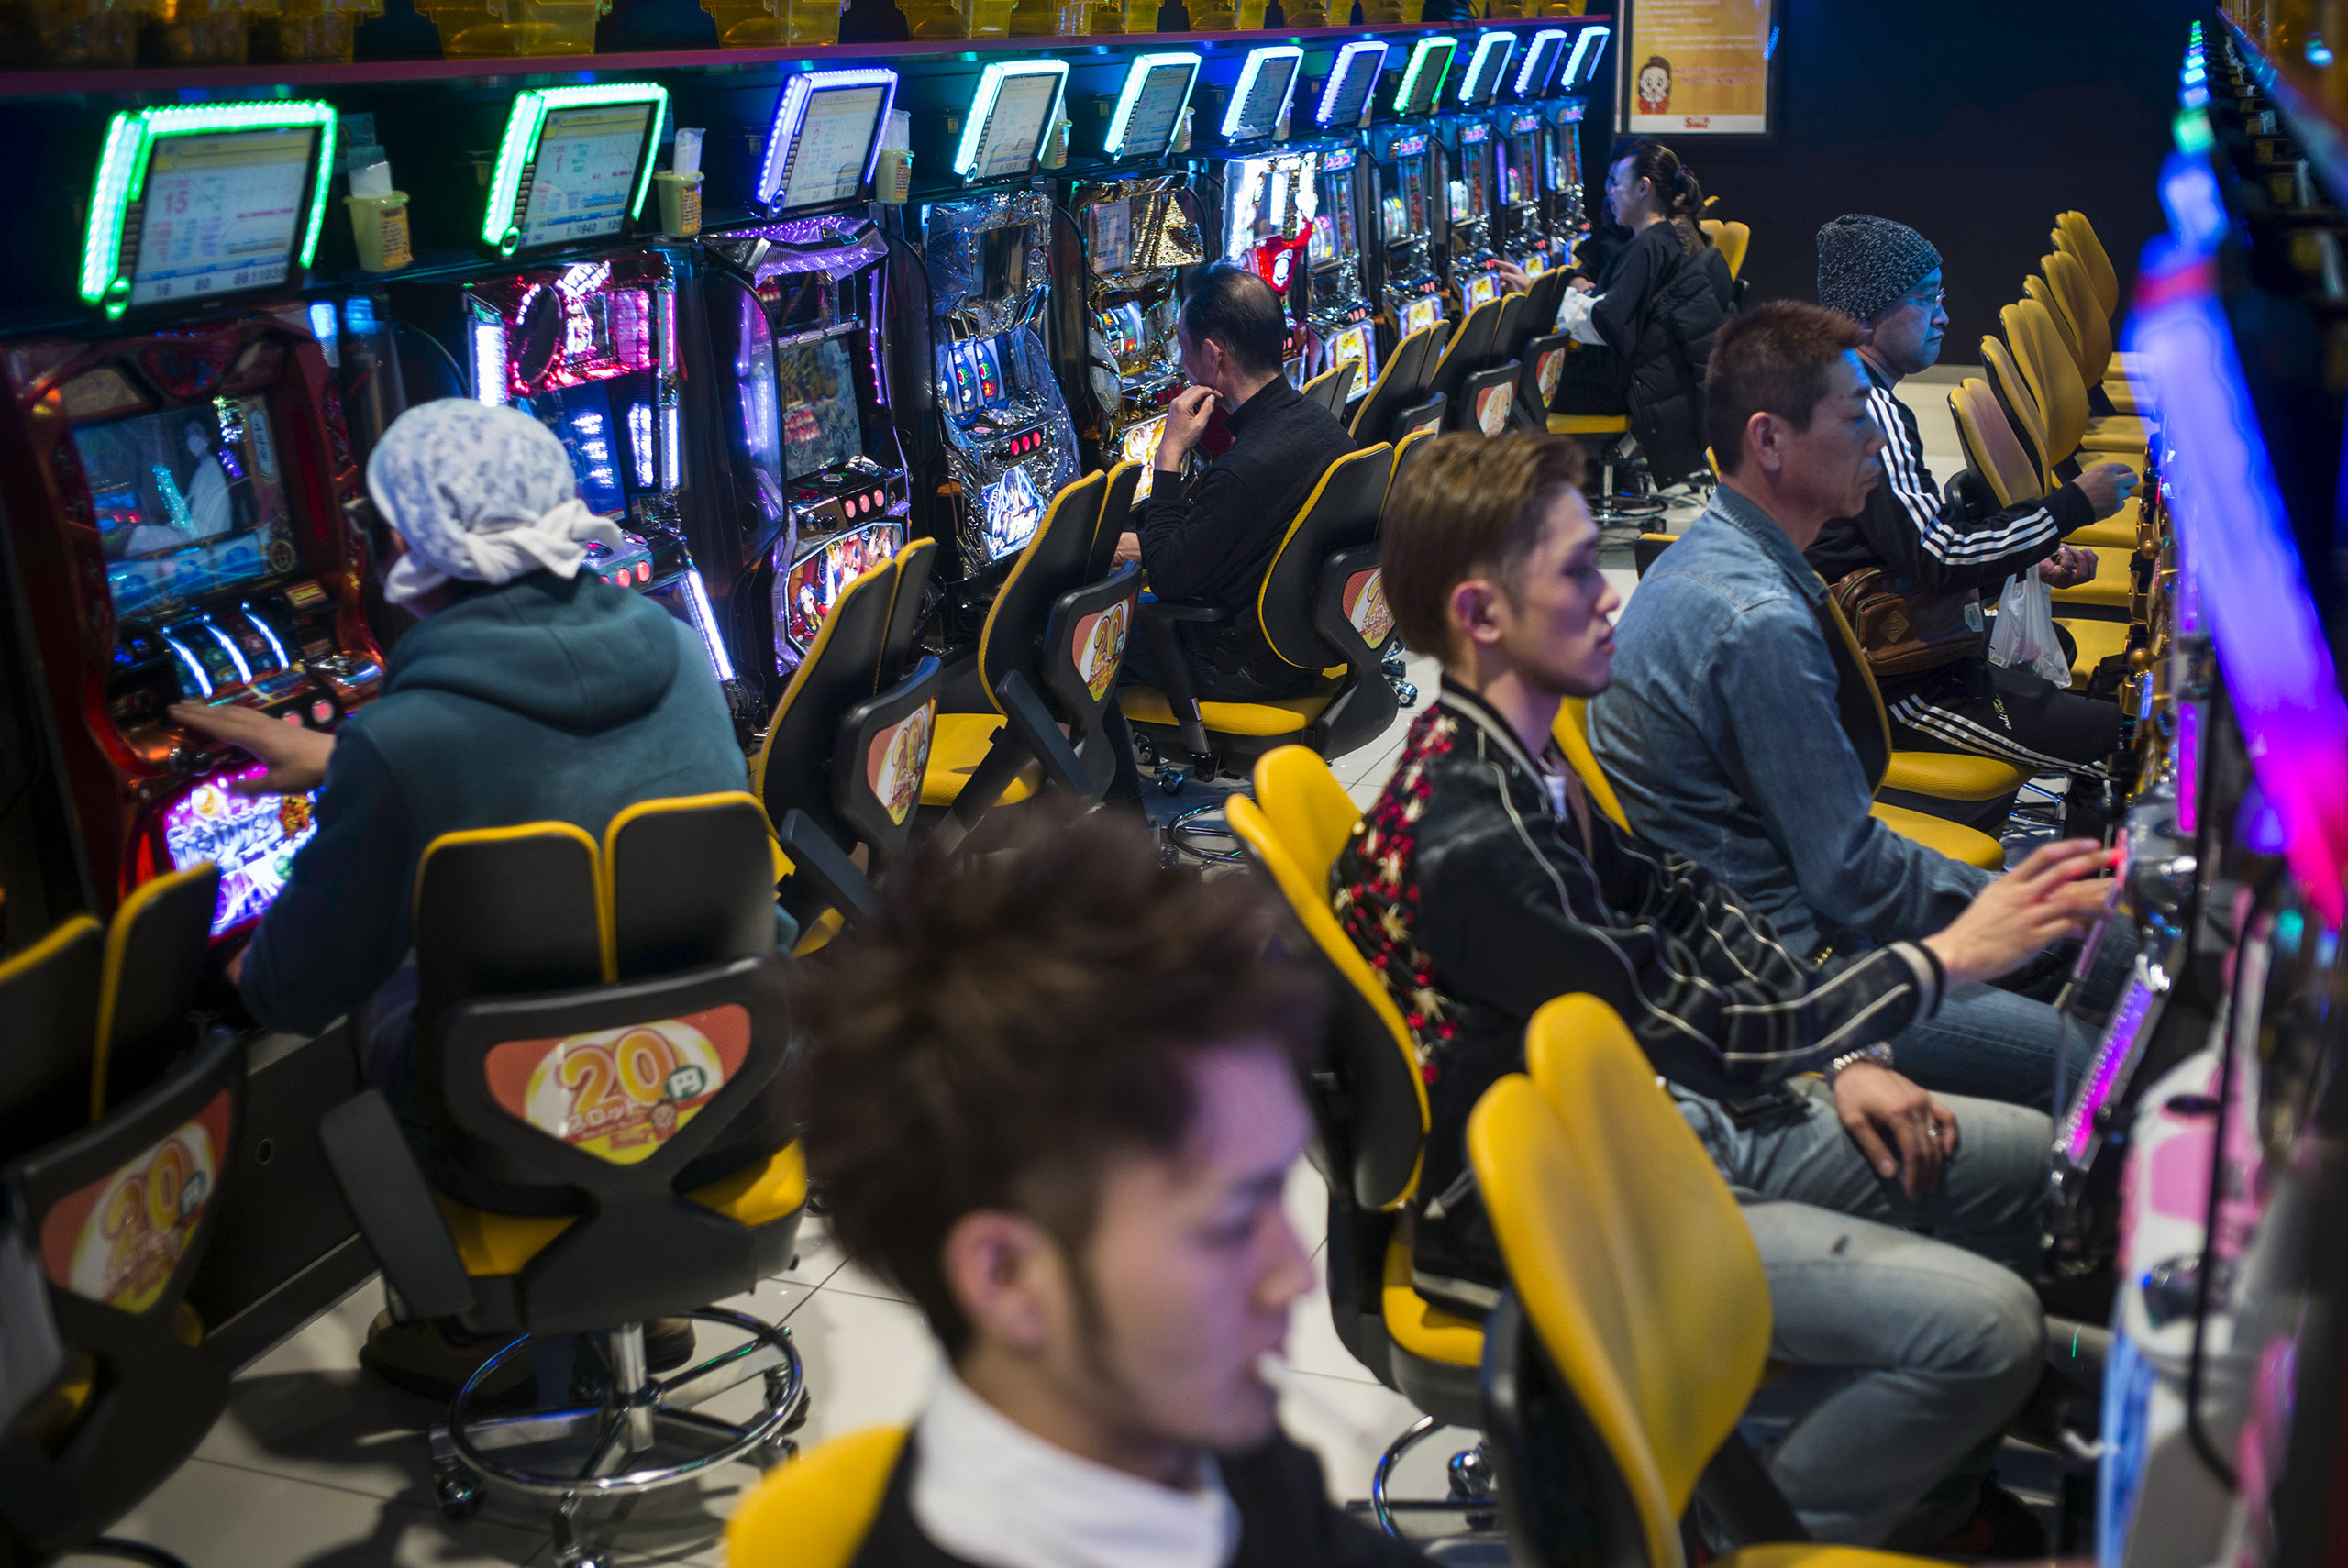 Yuki Mine, a 34-year-old part-time hairdresser and bartender, and other Minamisoma residents enjoy legal gambling in one of the many slot machine arcades, March 6, 2016. Several arcades have opened up in this region due to the high number of decontamination and other workers that have flocked to the town, as well as many residents who have received large amounts of compensation.